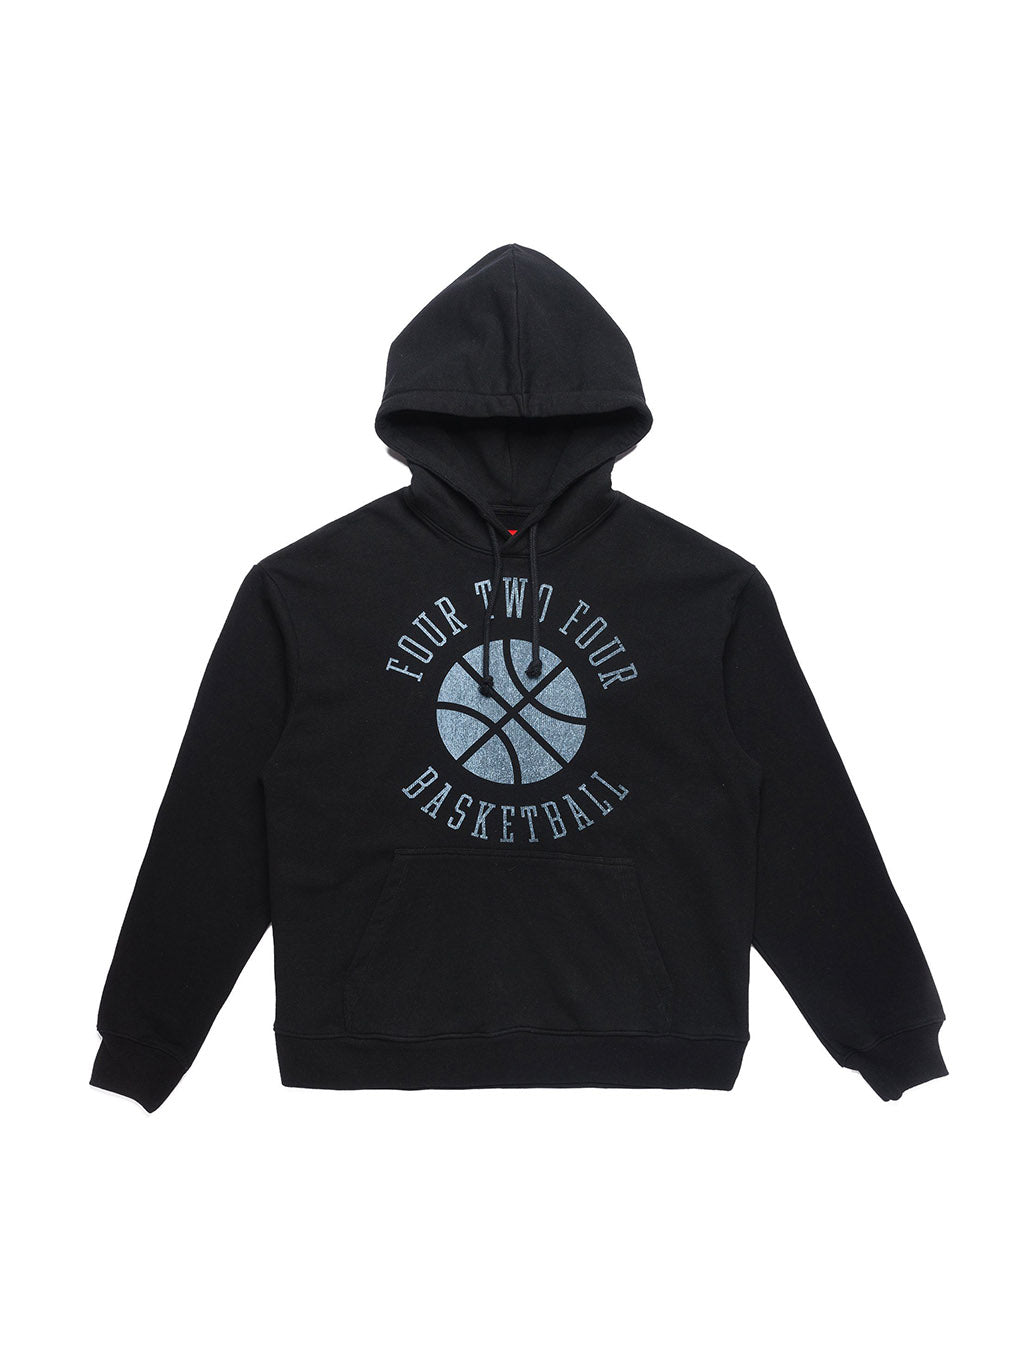 Black Basketball Hooded Sweatshirt